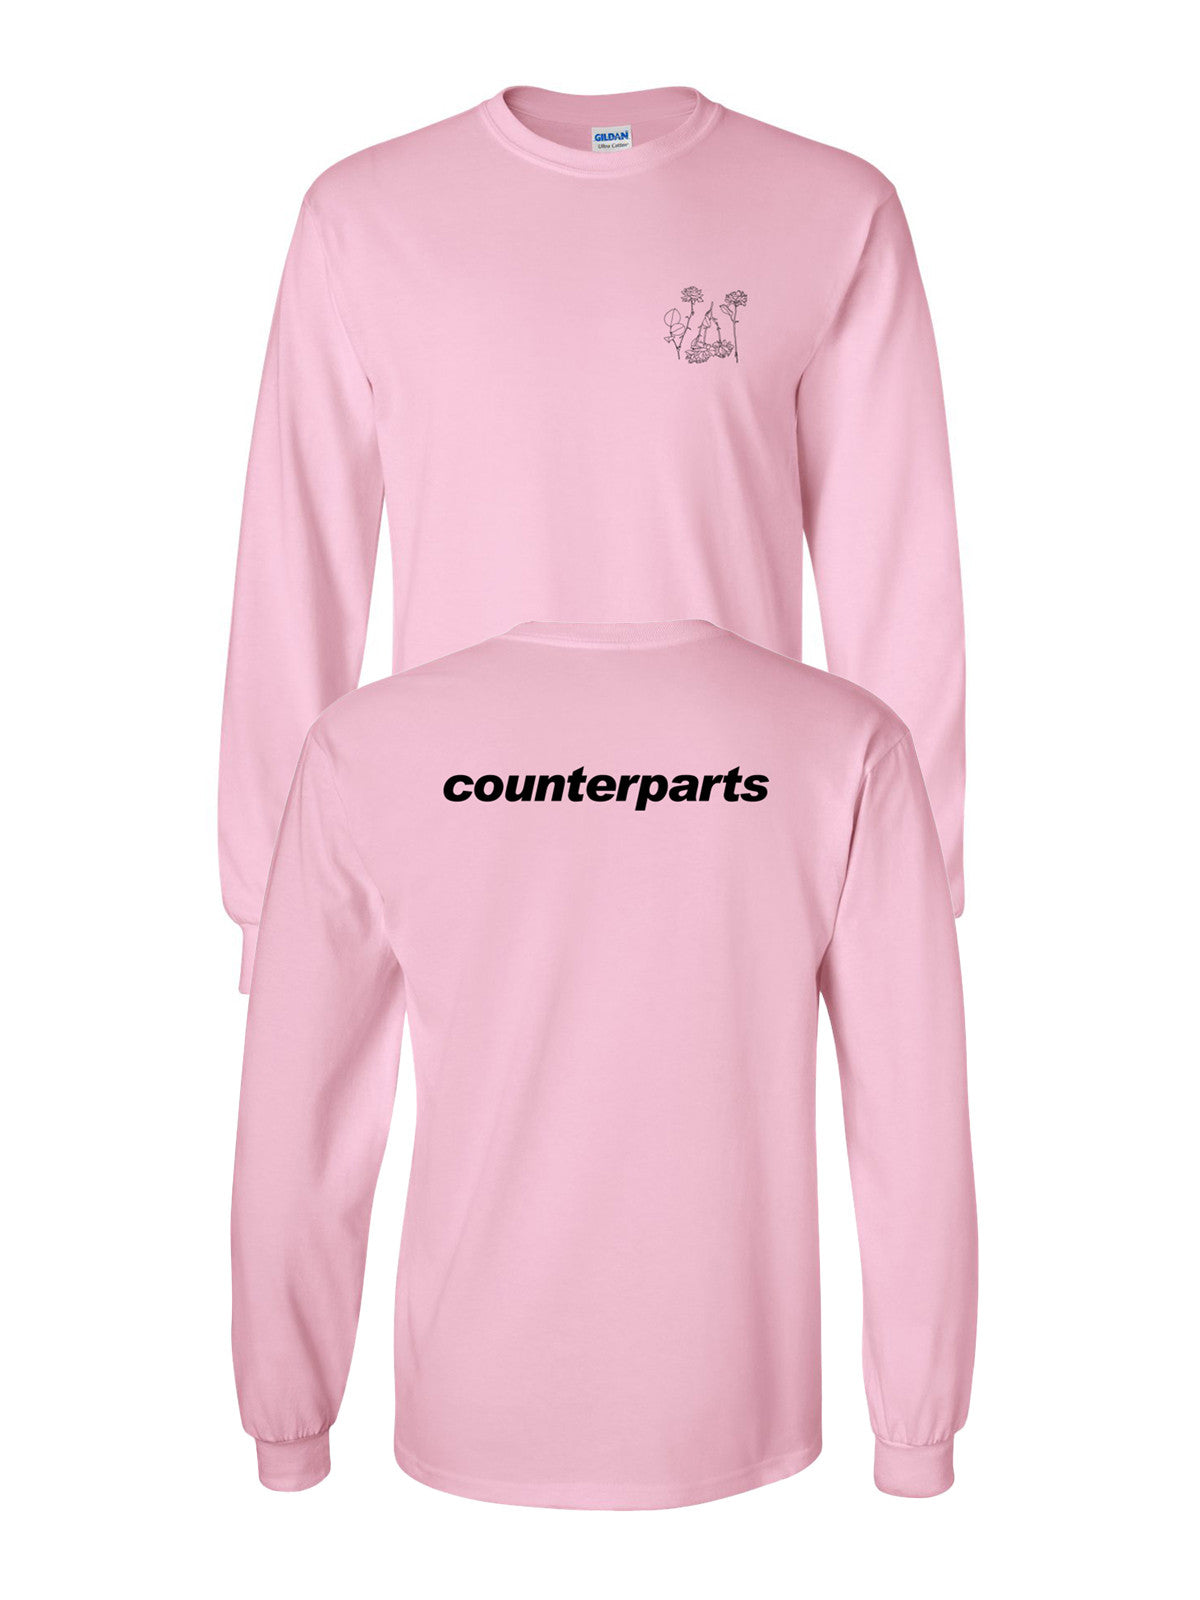 Counterparts - Flowers Longsleeve - Merch Limited